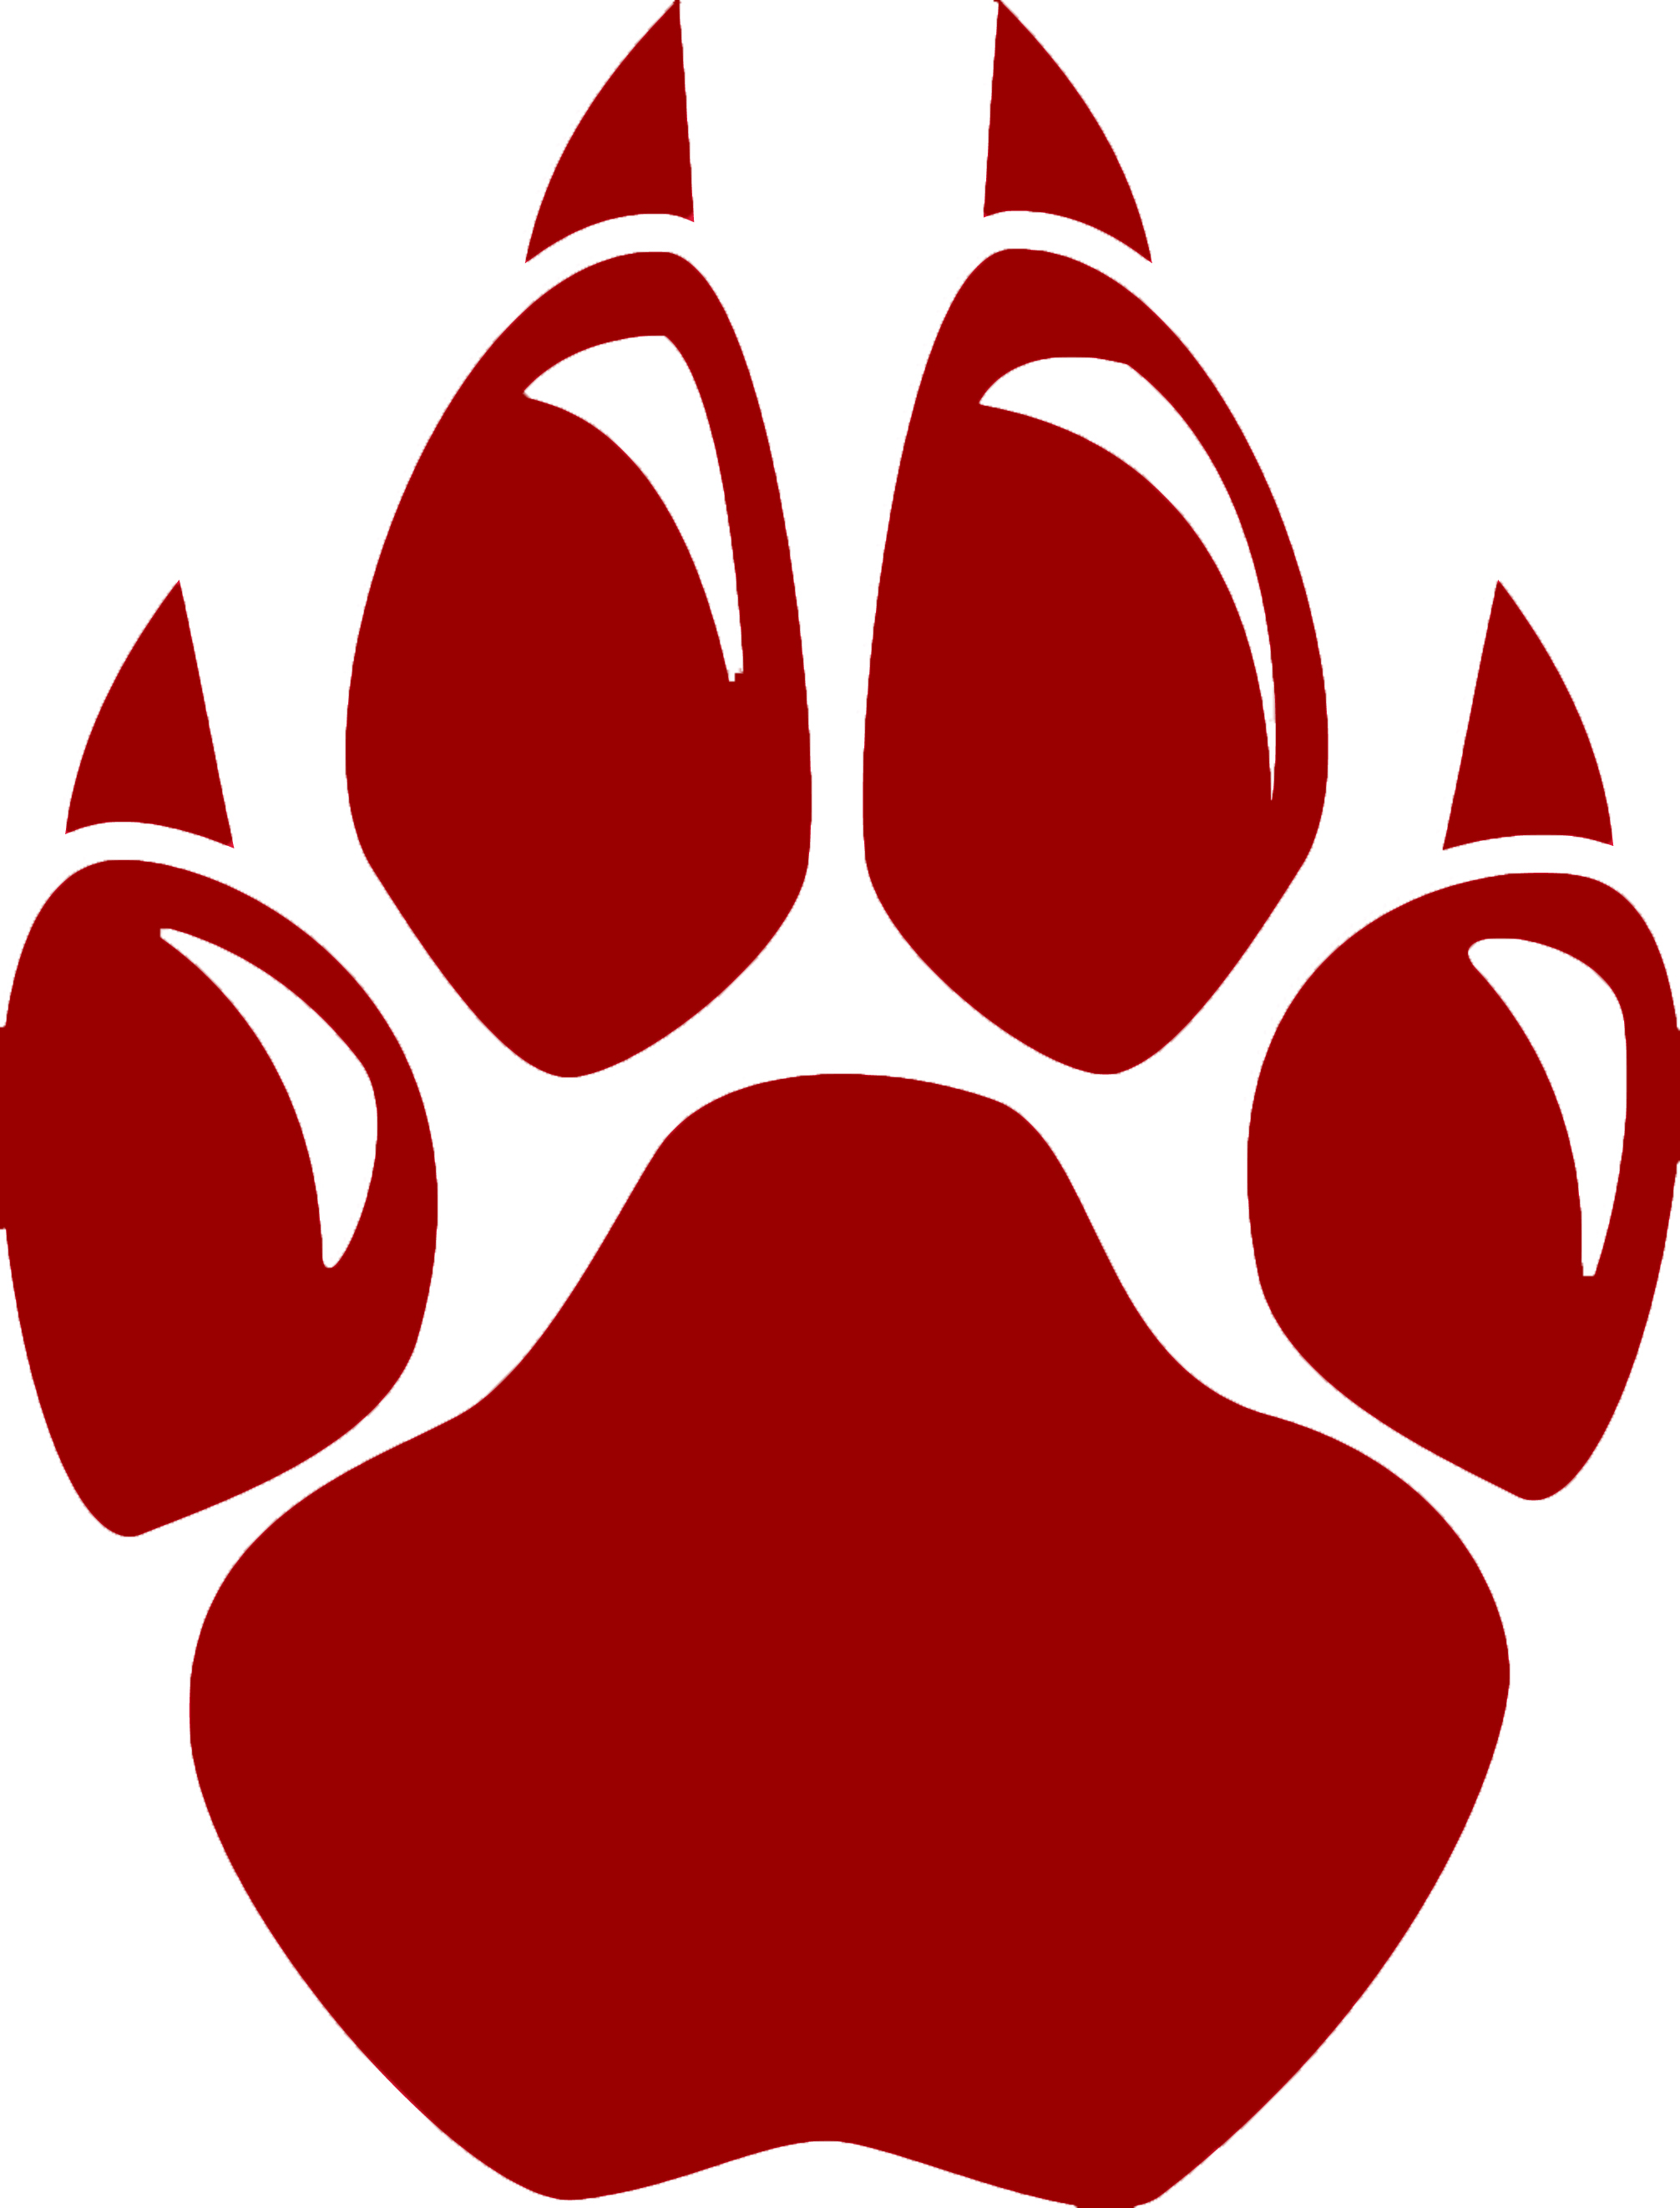 Wildcat footprint clipart.